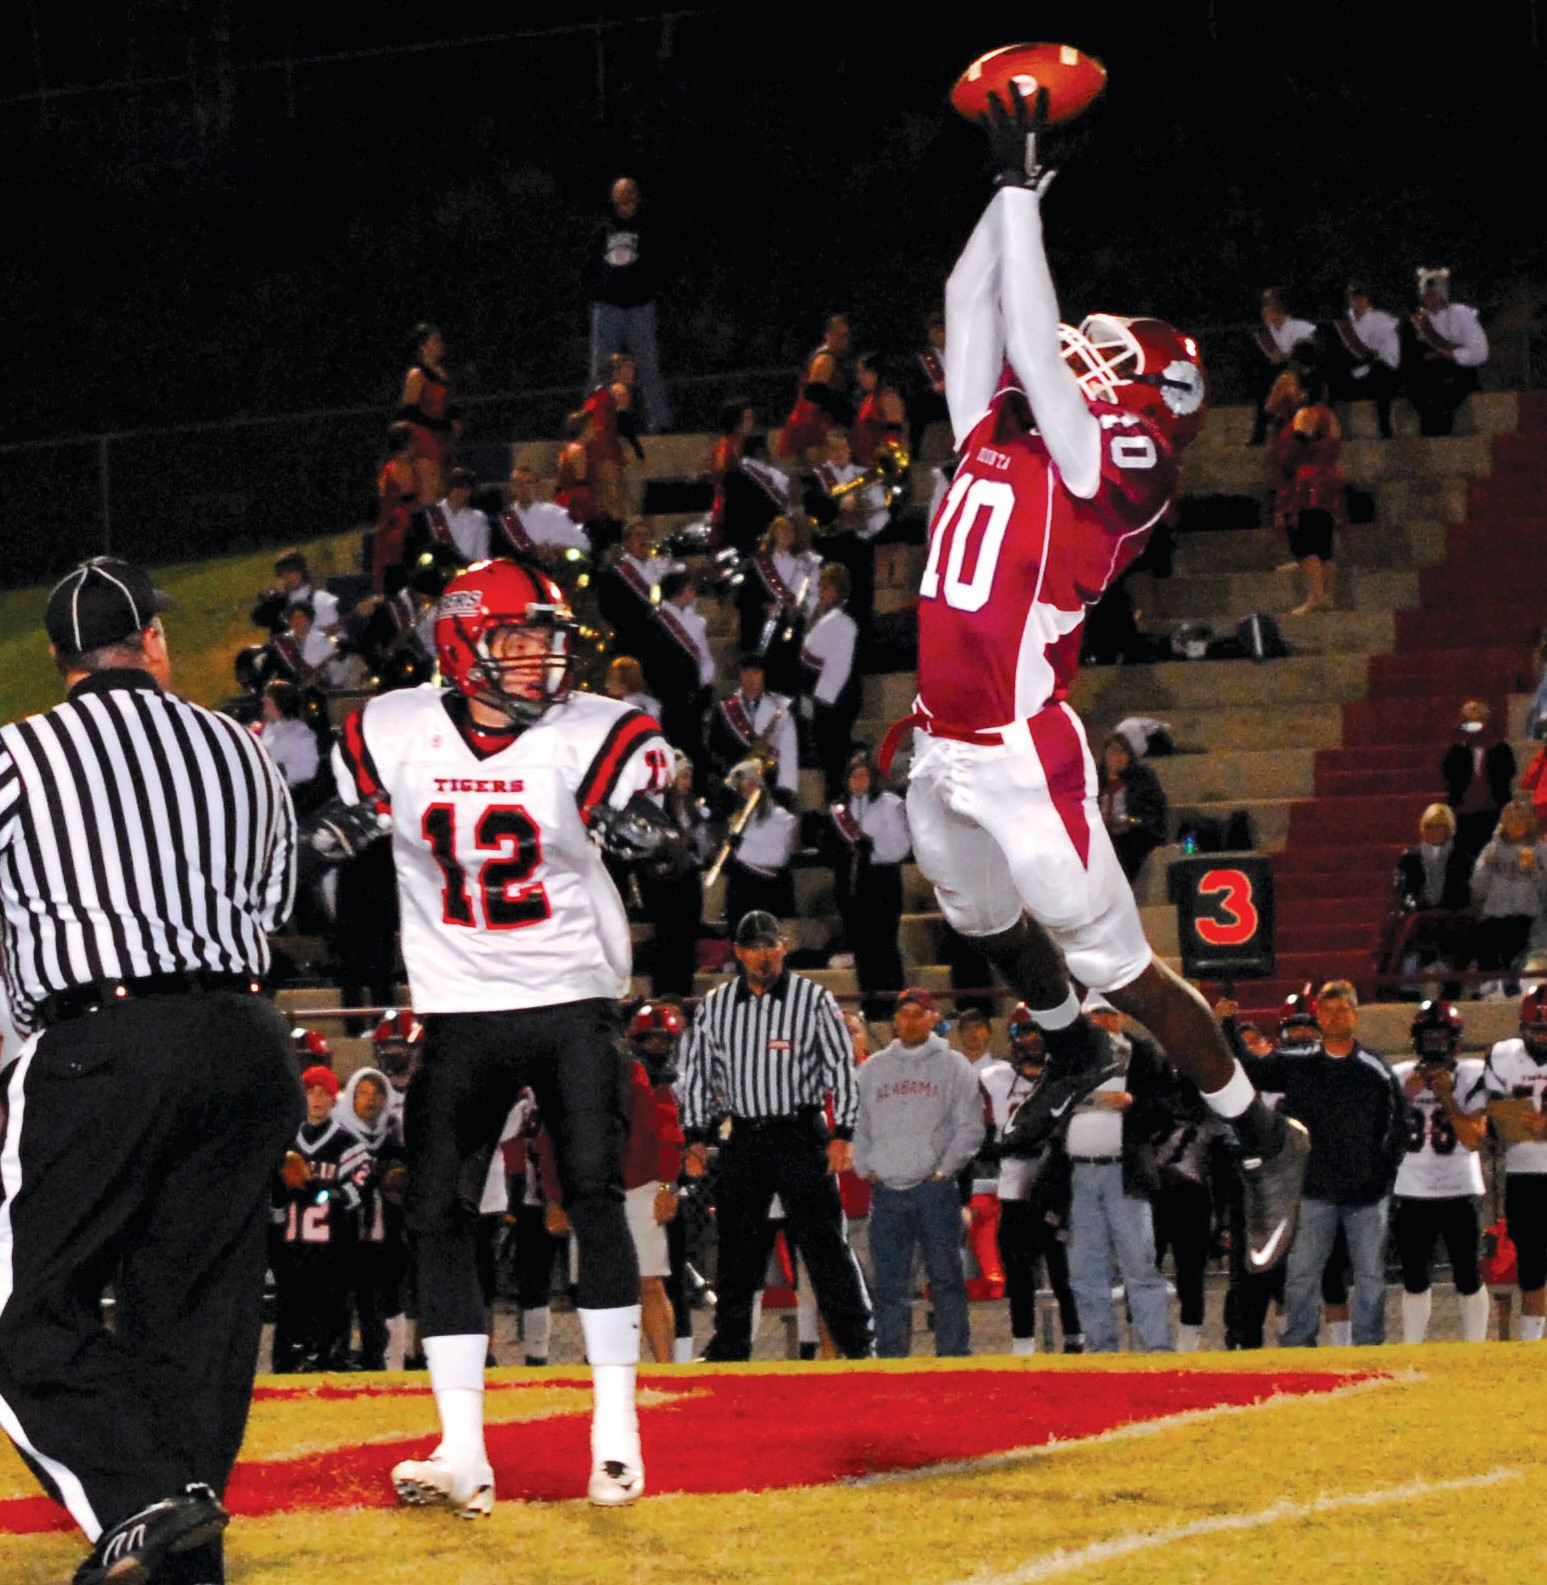 Redskin defensive back Alvin Scott goes high to grab an interception early in Oneonta's 49-34 victory over Cleburne County last Friday night at Gilbreath Stadium. The Redskins are one of only two schools in the county guaranteed a playoff spot – Appalachian is the other. Hayden has a chance to make the playoffs but the Wildcats will need to win this week at Locust Fork to have a chance. See Sports, pg A4.